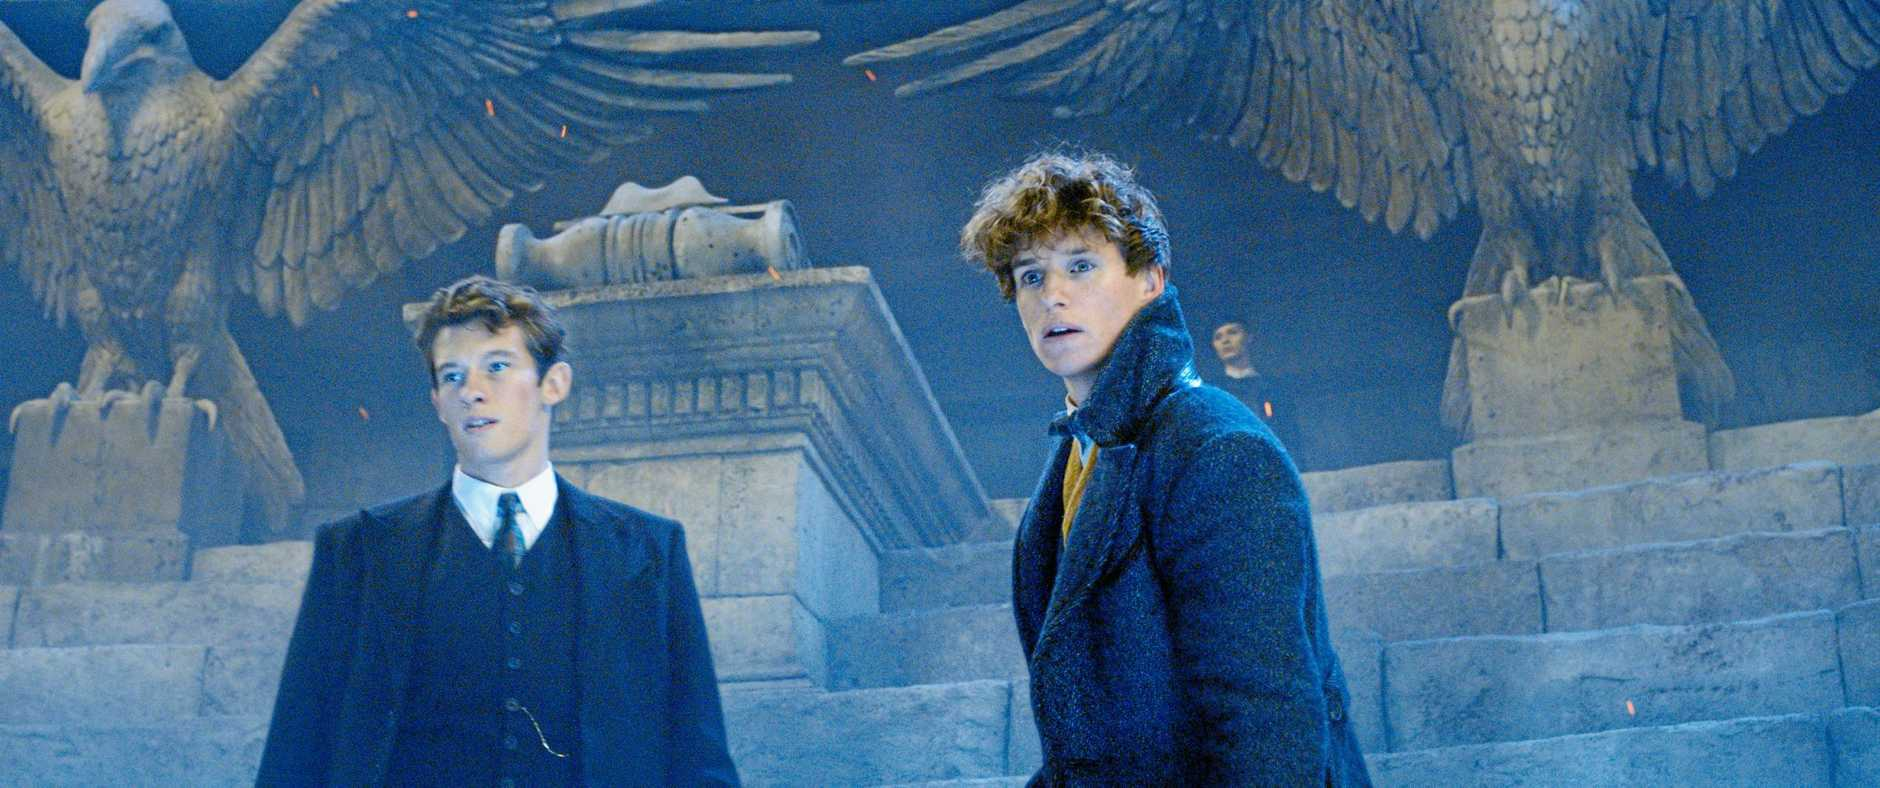 Callum Turner and Eddie Redmayne in a scene from the movie Fantastic Beasts: The Crimes of Grindelwald. Supplied by Warner Bros.